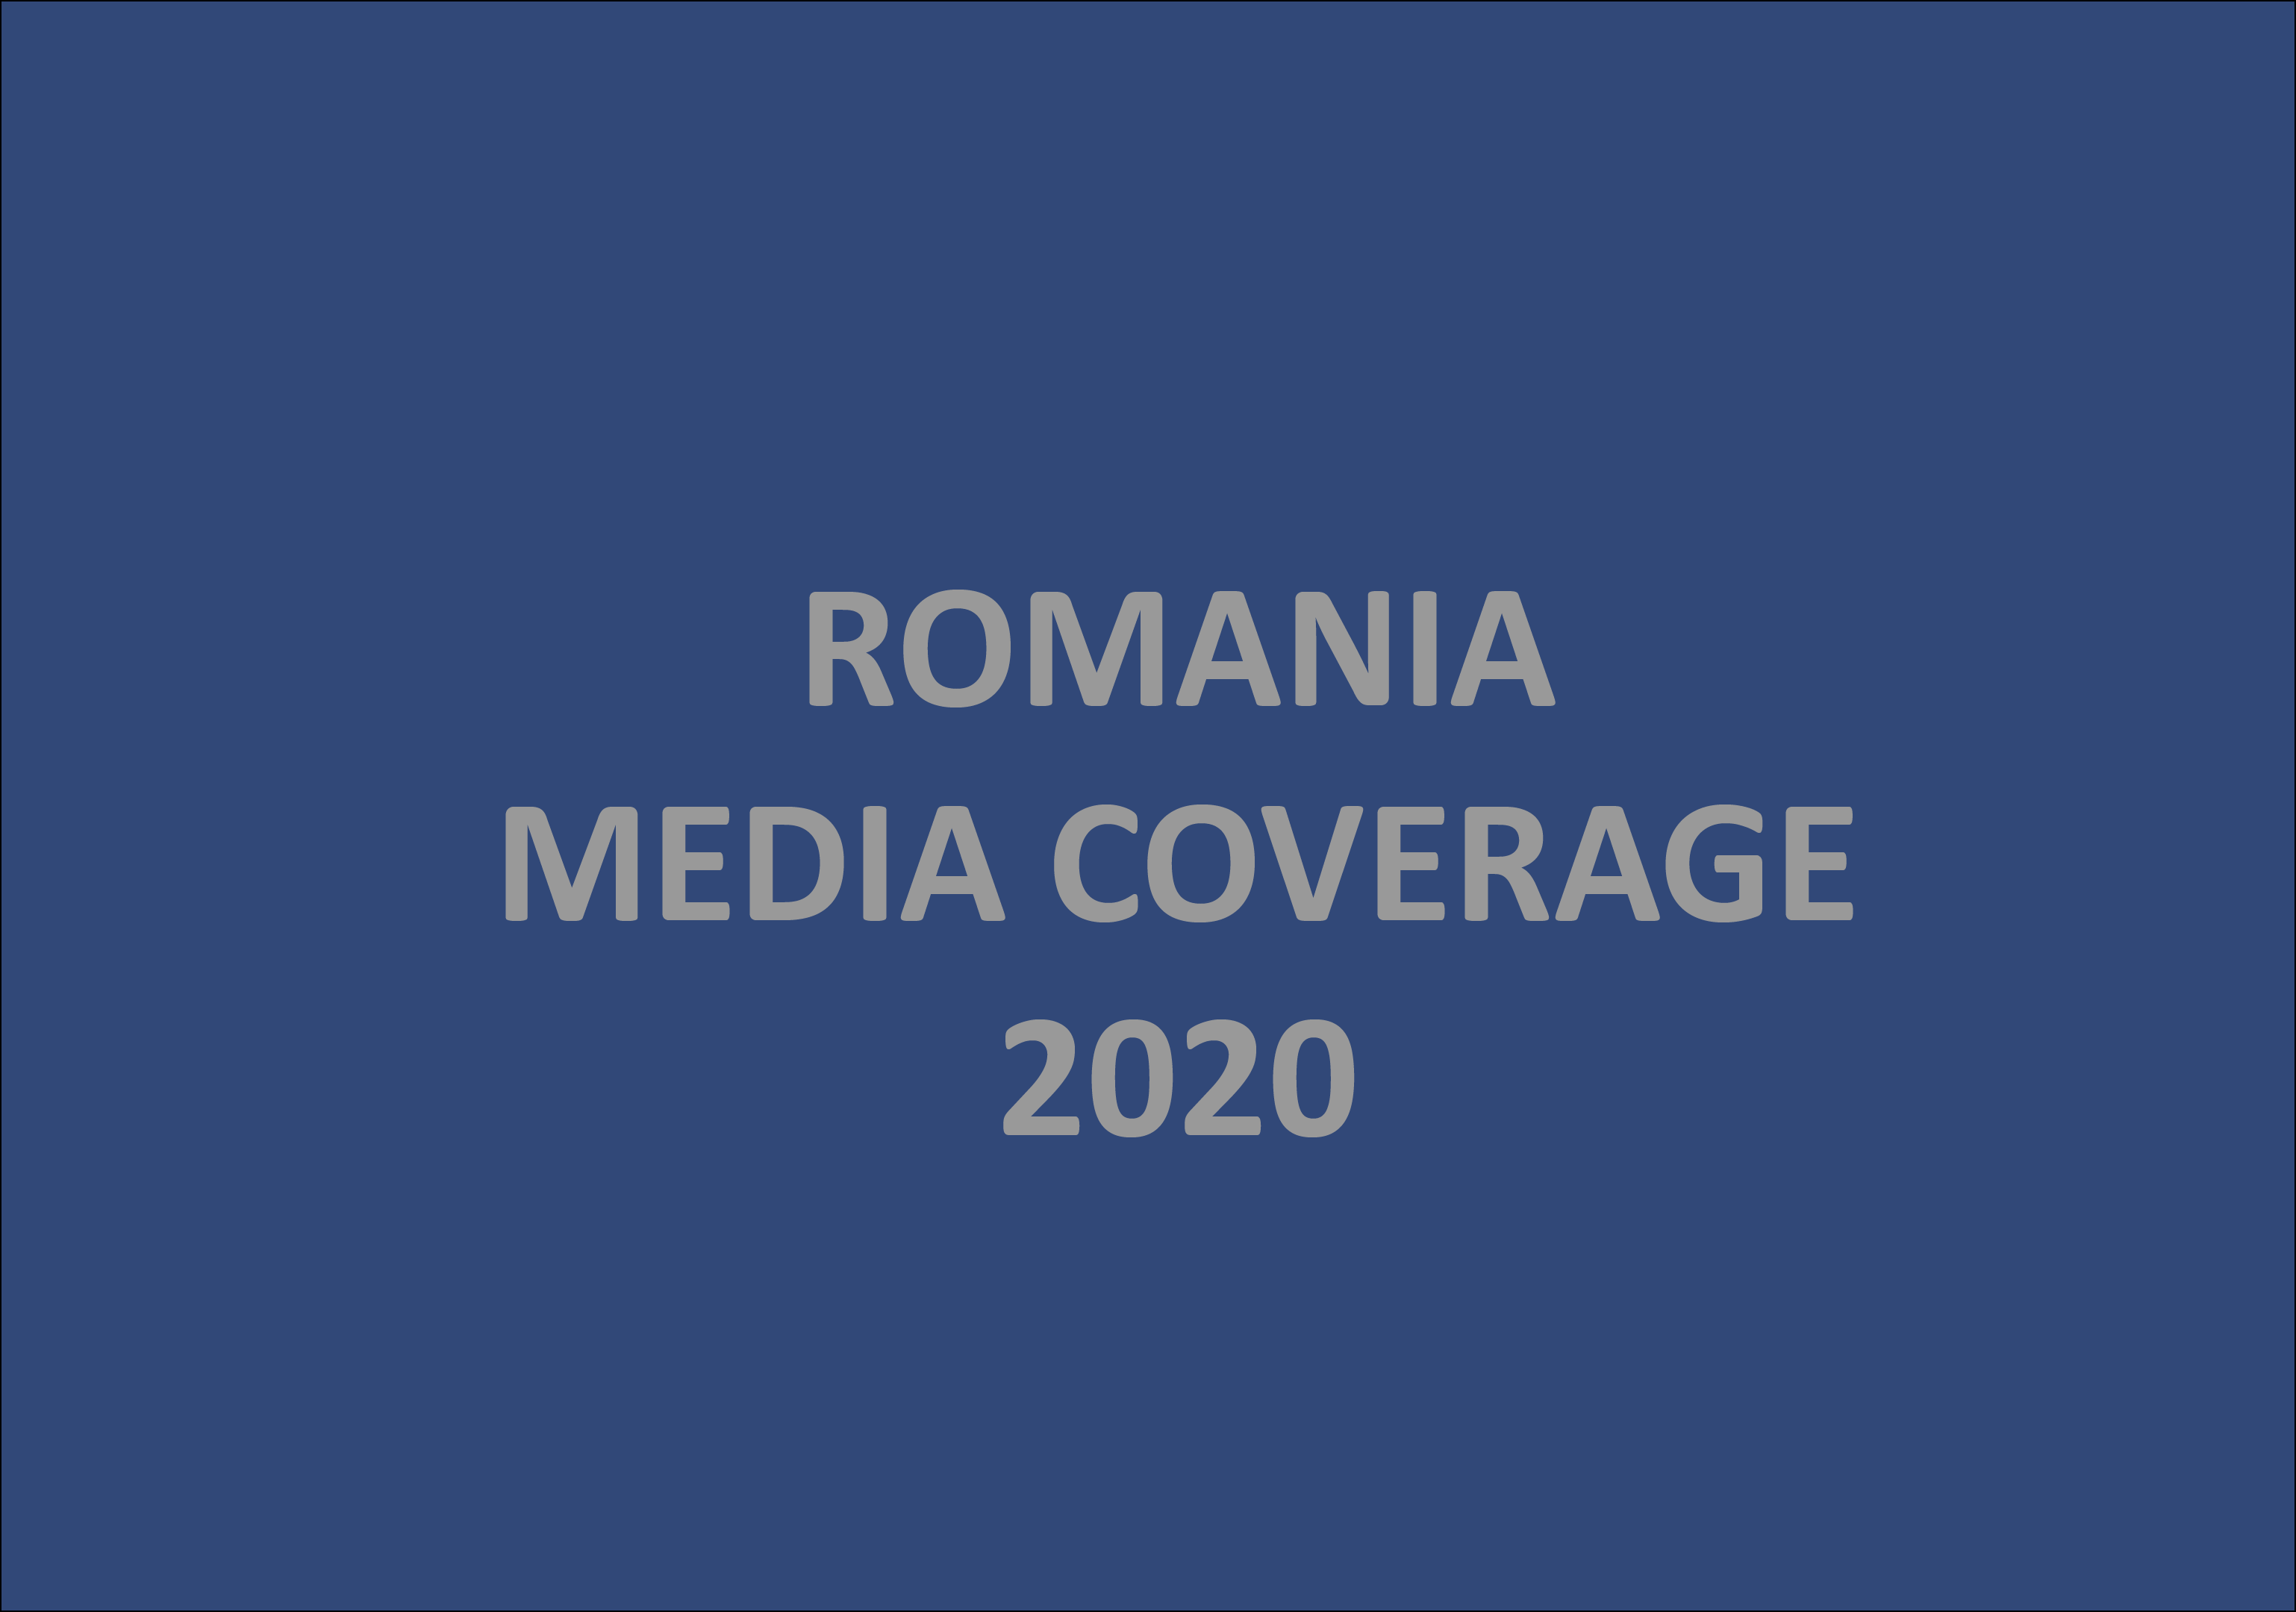 Romania Media Coverage 2020